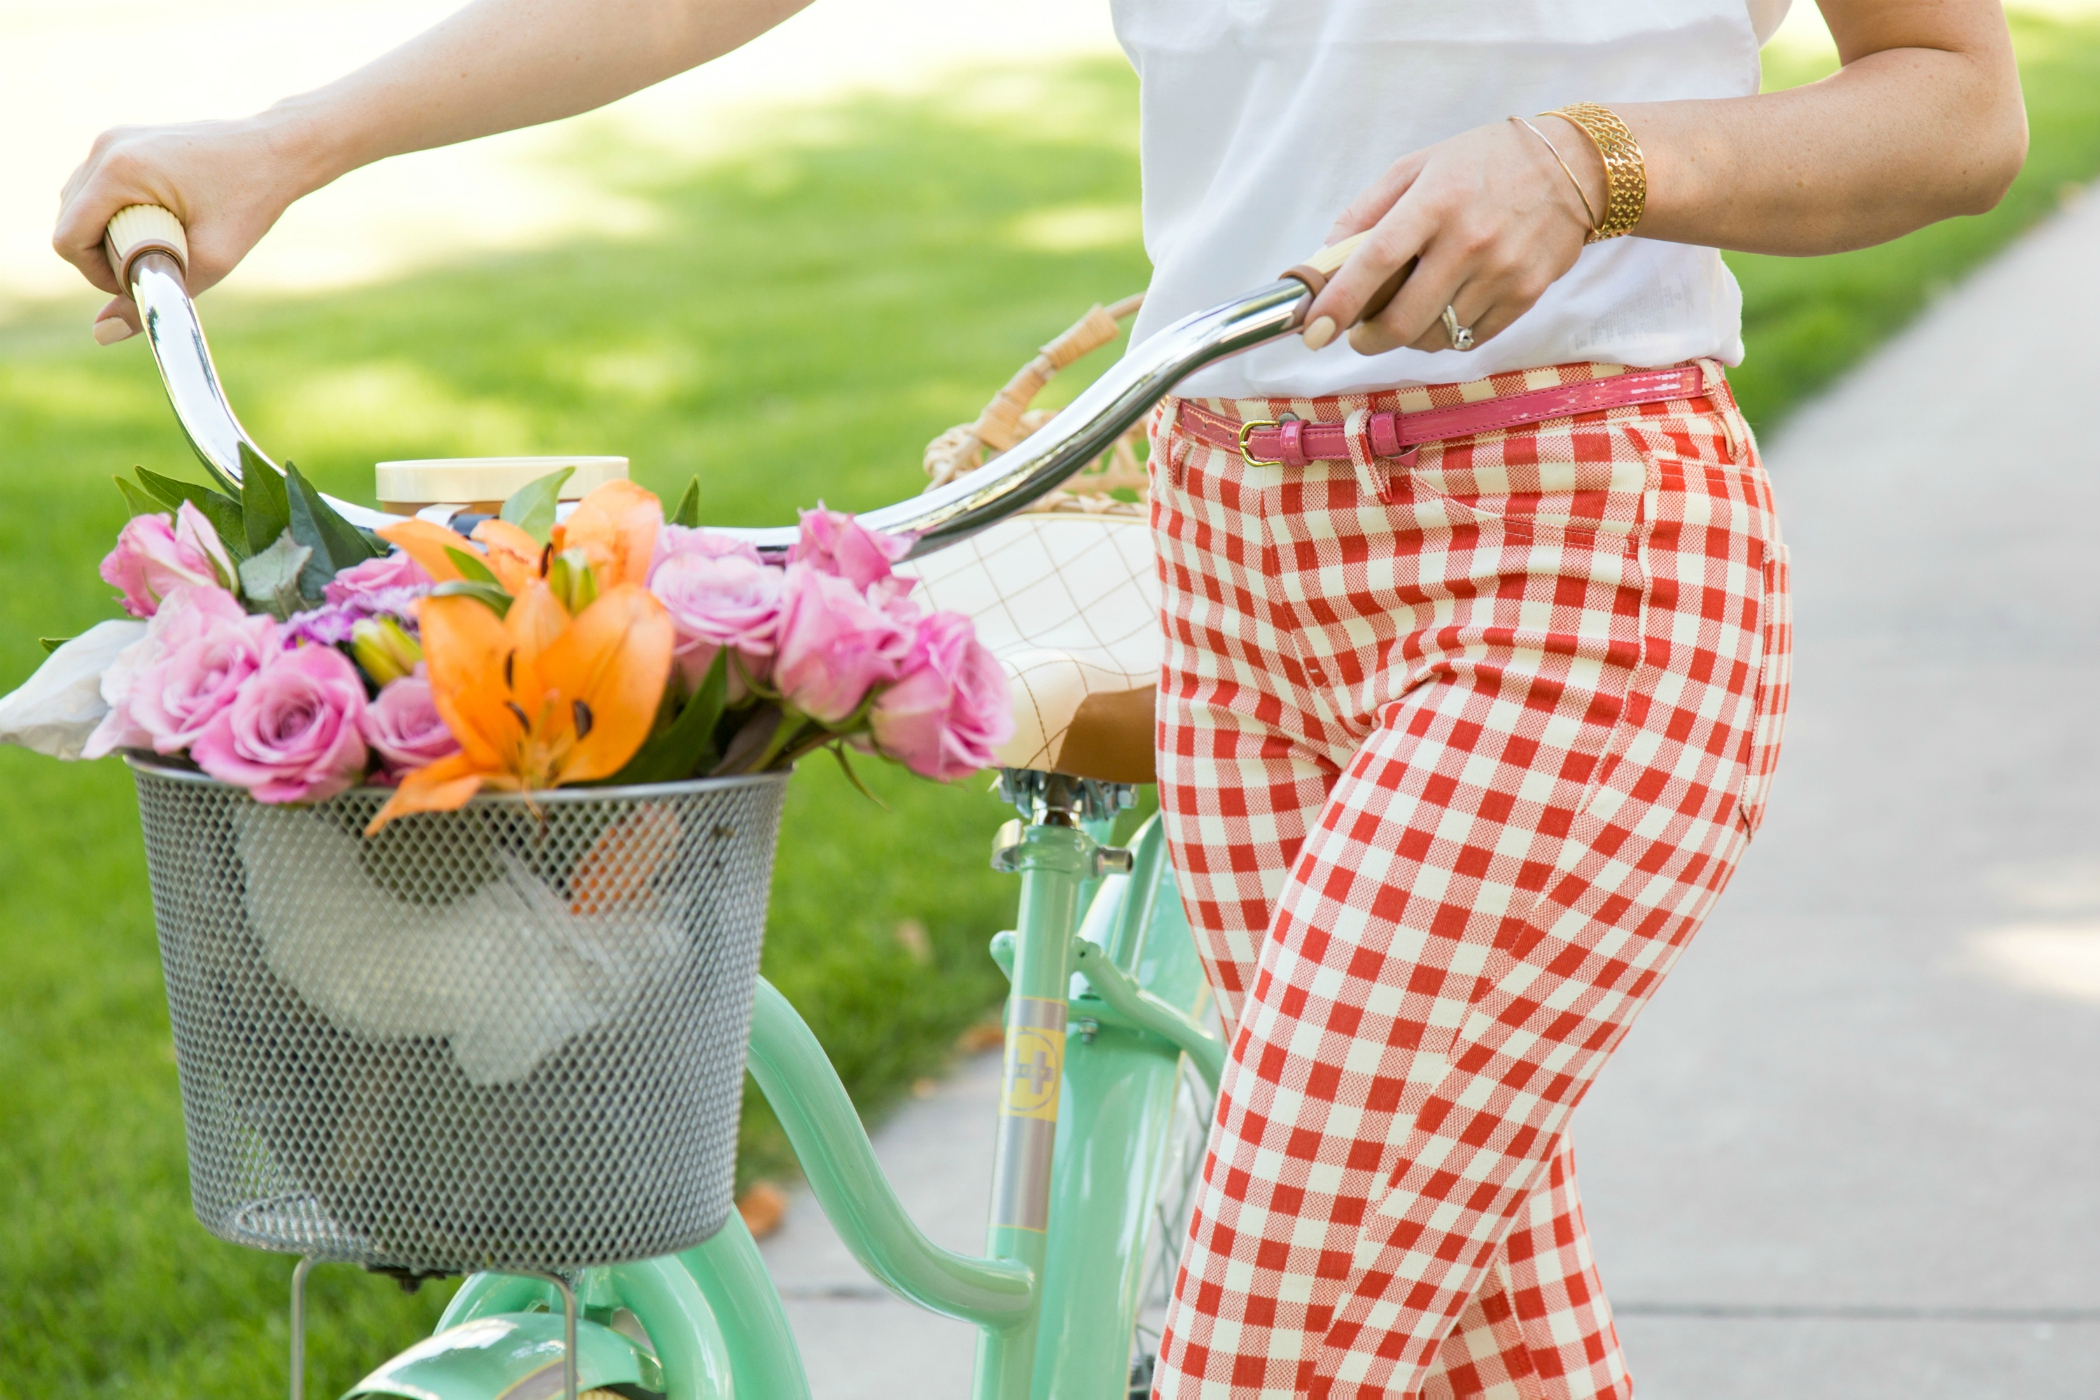 The Sugared Lemon flowers, bicycle, and gingham